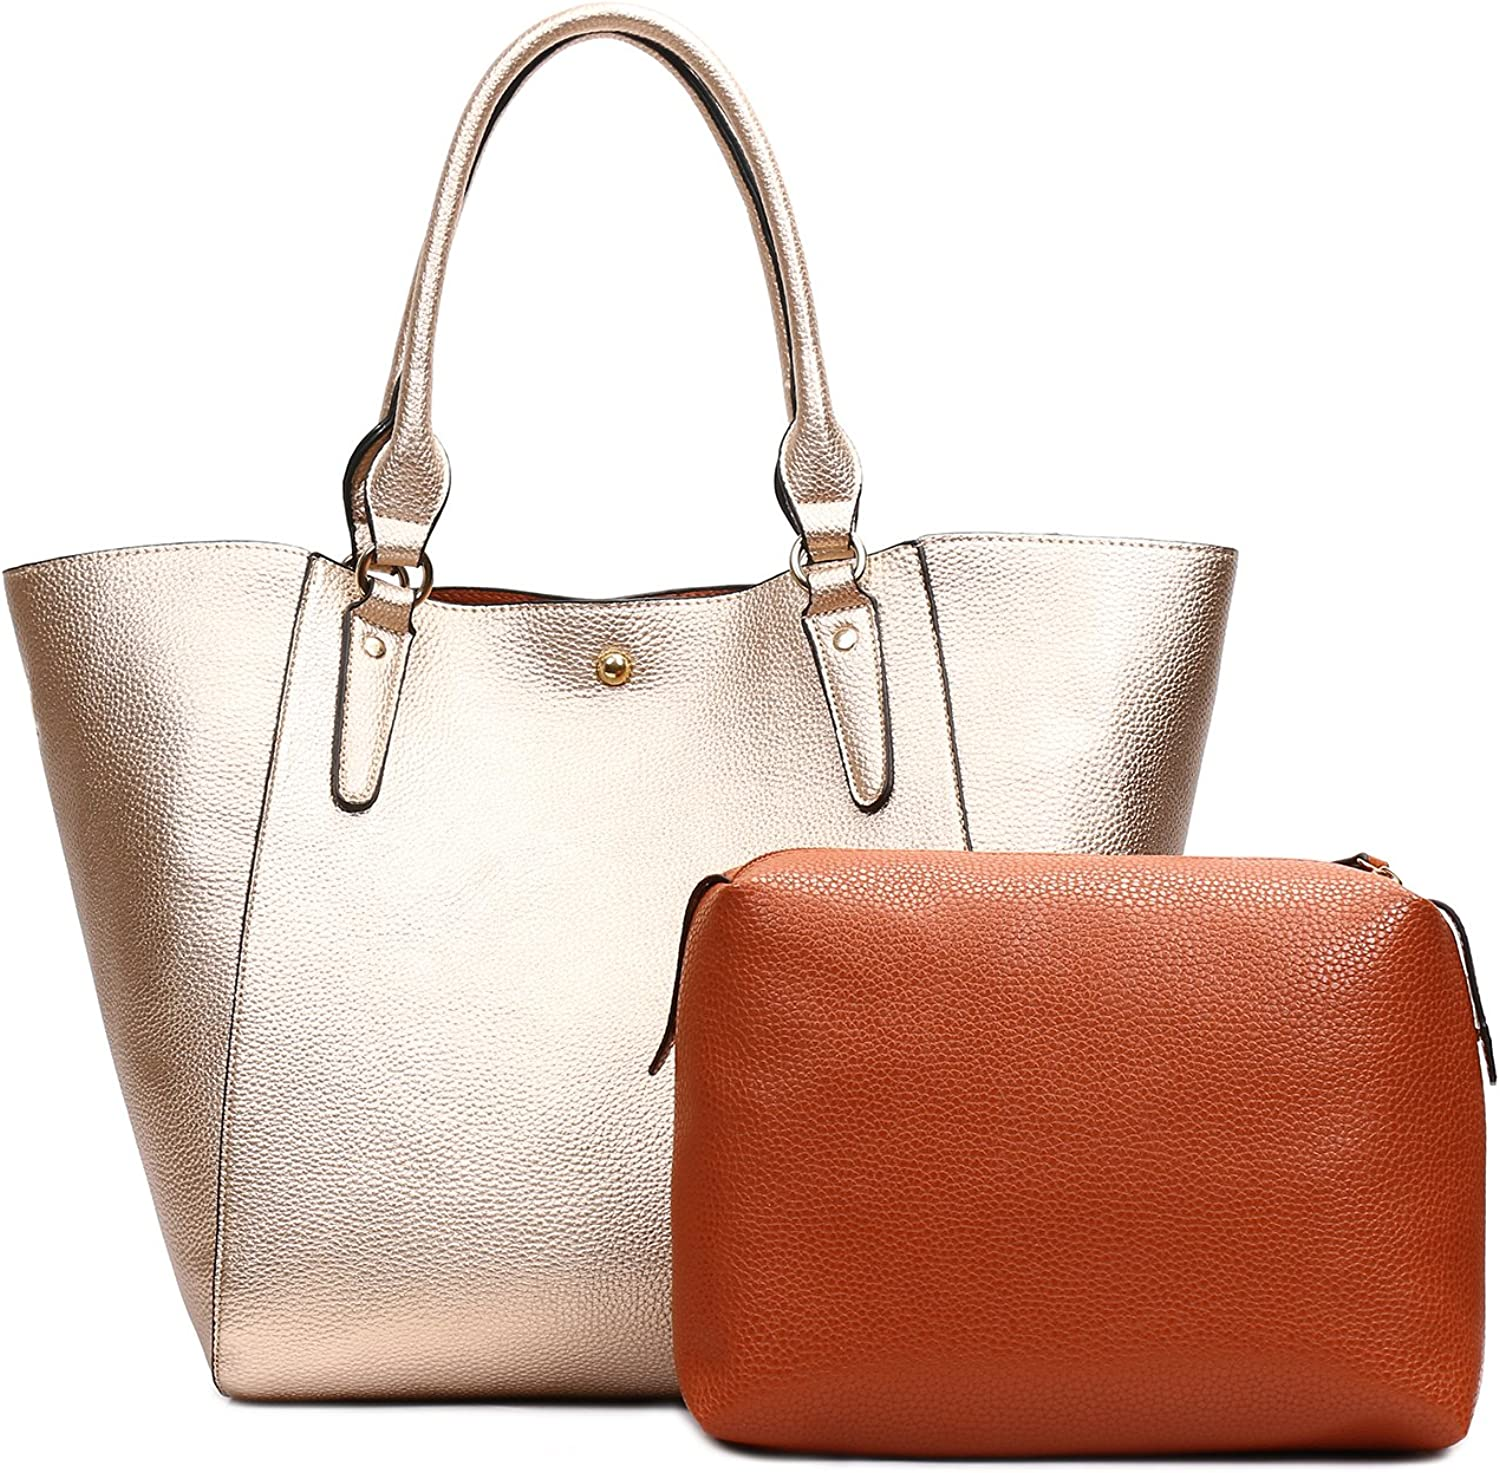 Unlimited energy Women Pu Leather Big Shoulder Bag Purse Handbag Tote Bags